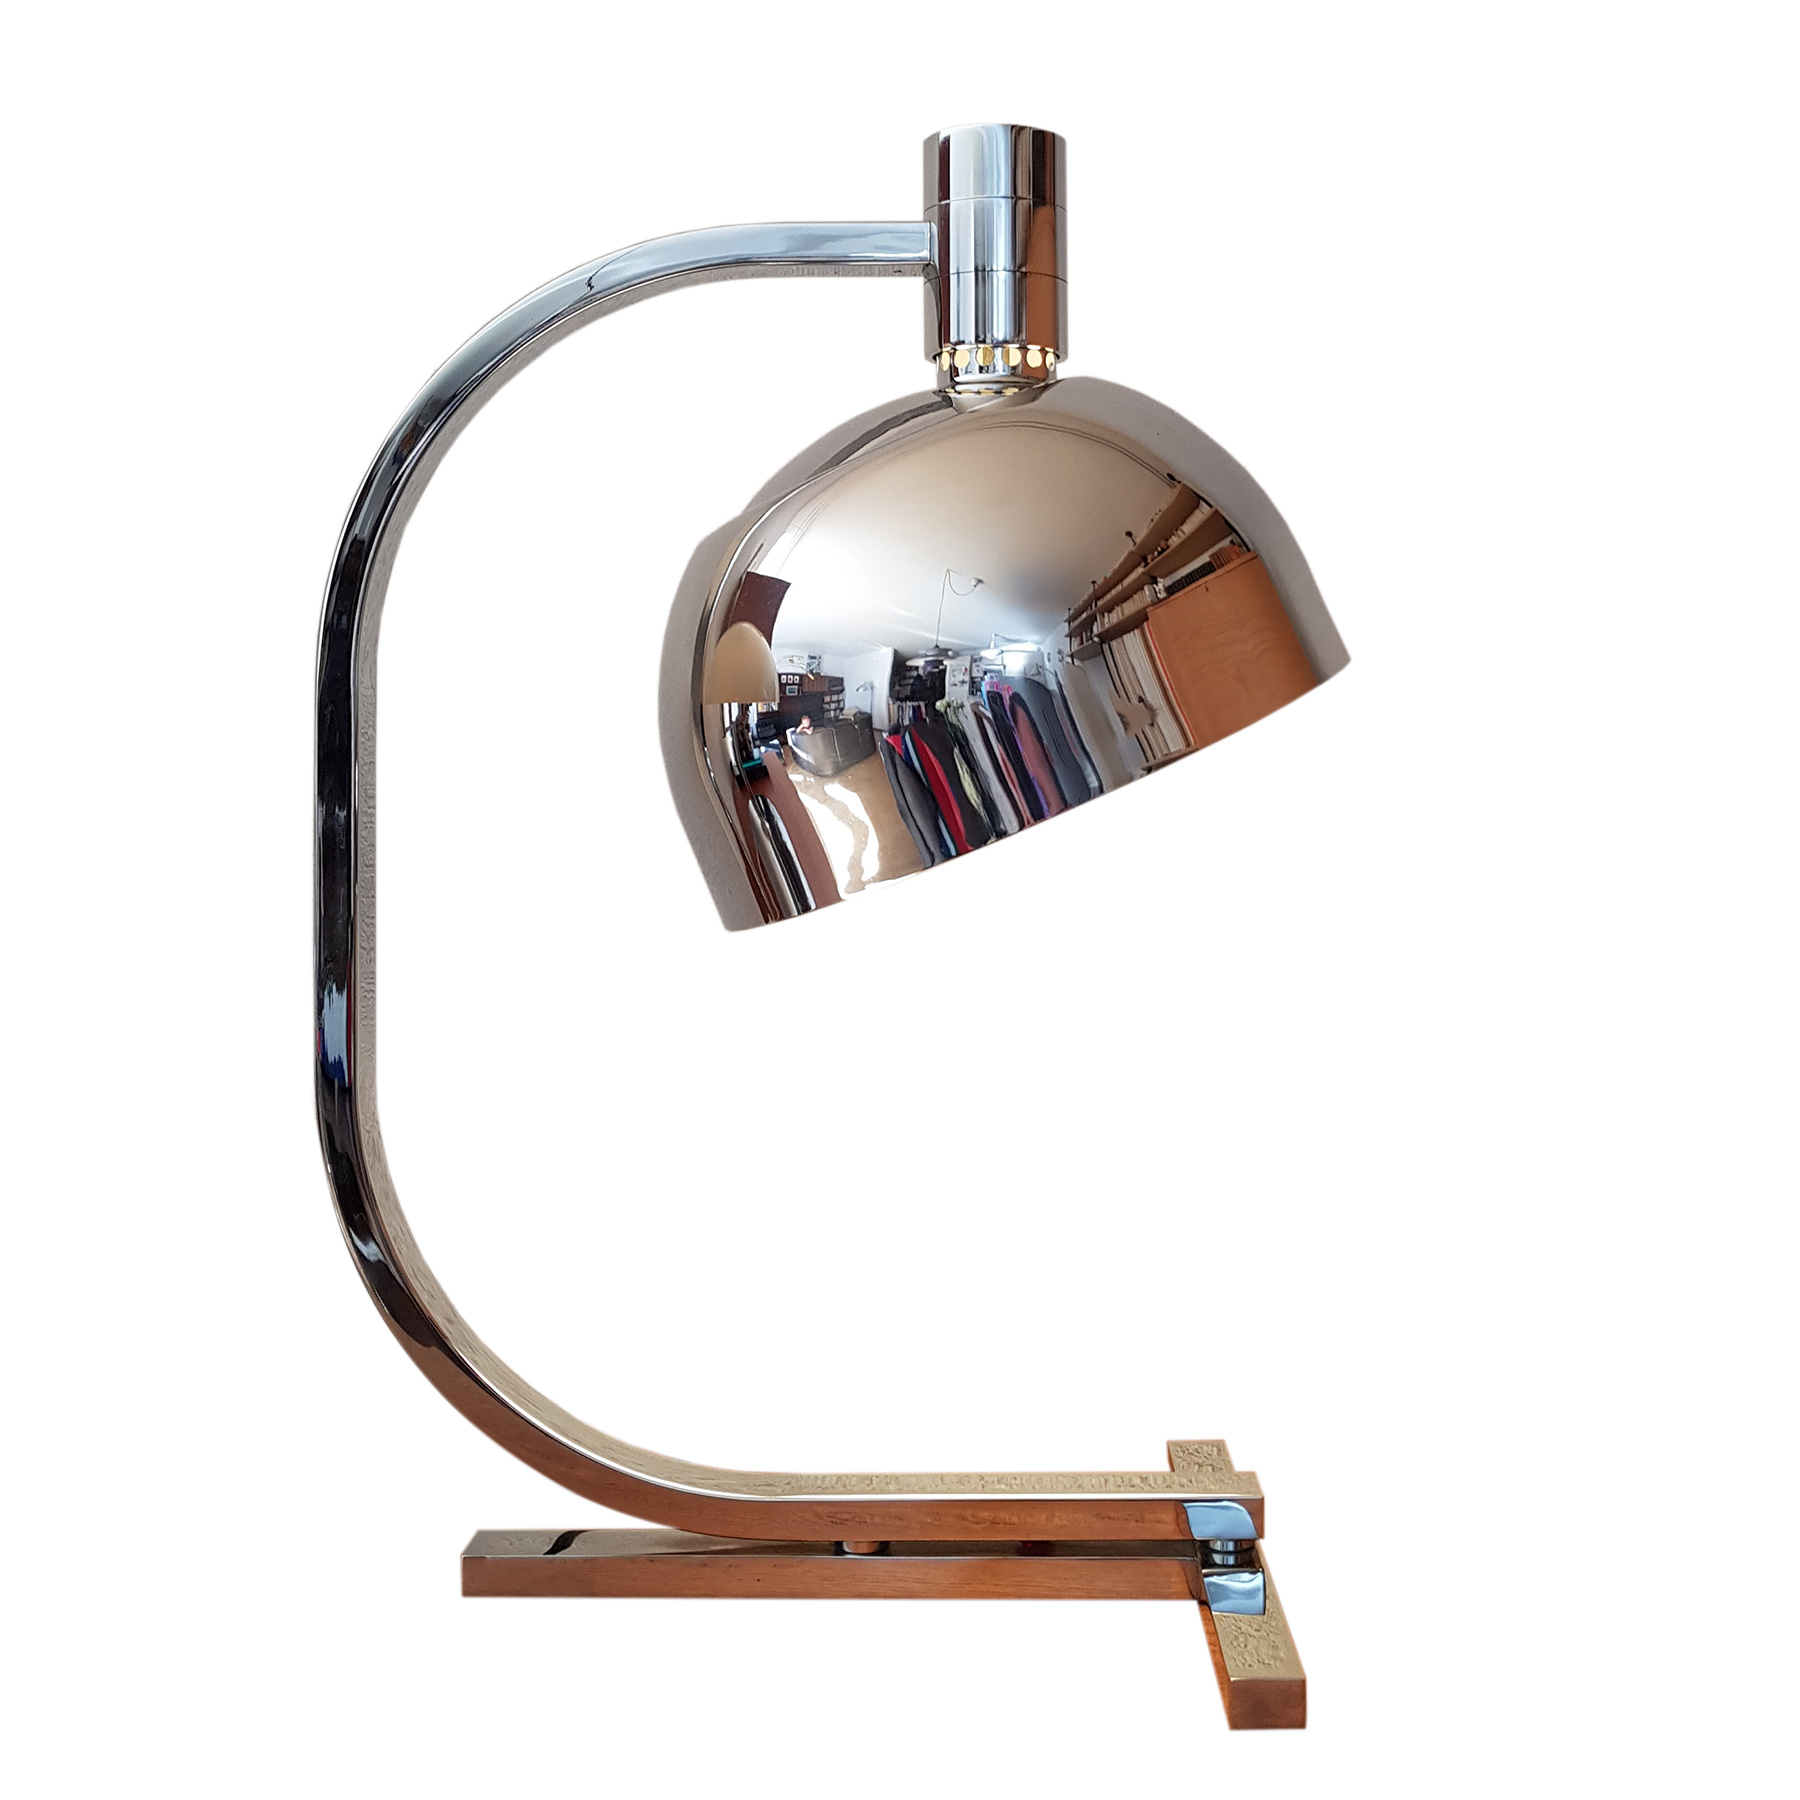 fanco albini franca helg paolo piva chrome desk lamp am/as